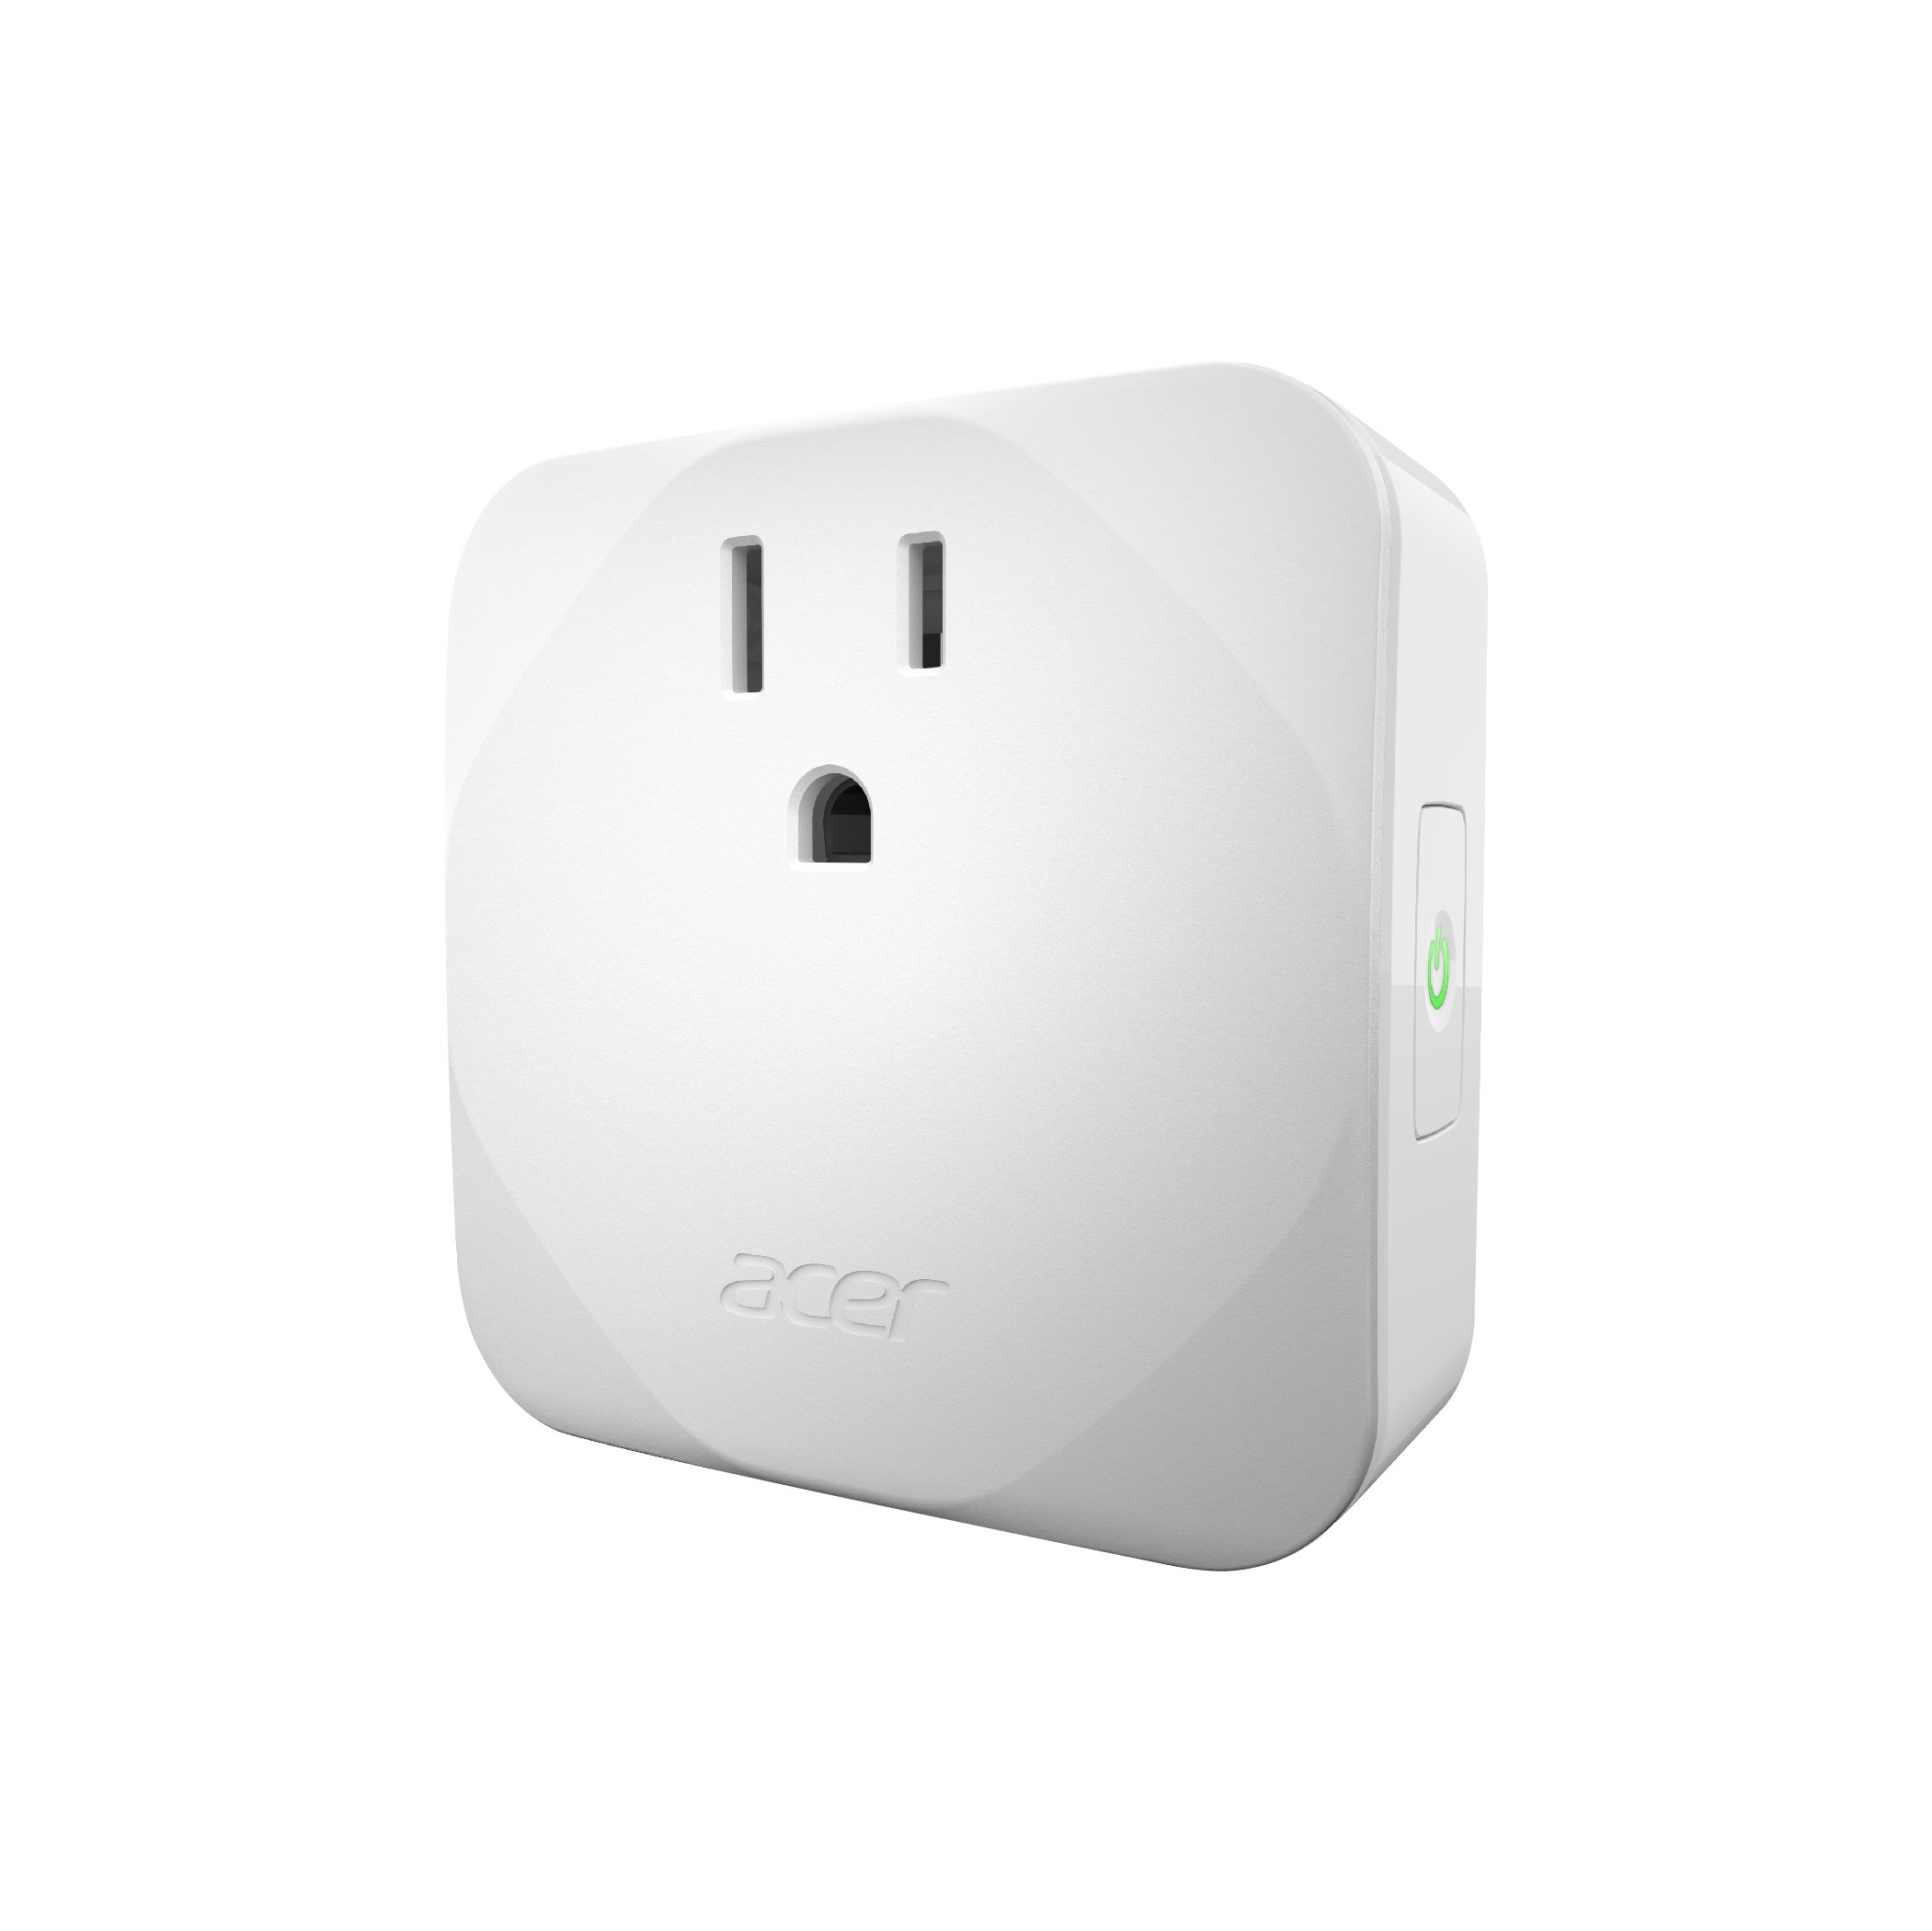 Acer Smart Plug with Power Meter, WiFi Enabled, No Hub Required, Remote Control by APP, Timer and Scheduling Function, Overload Protection